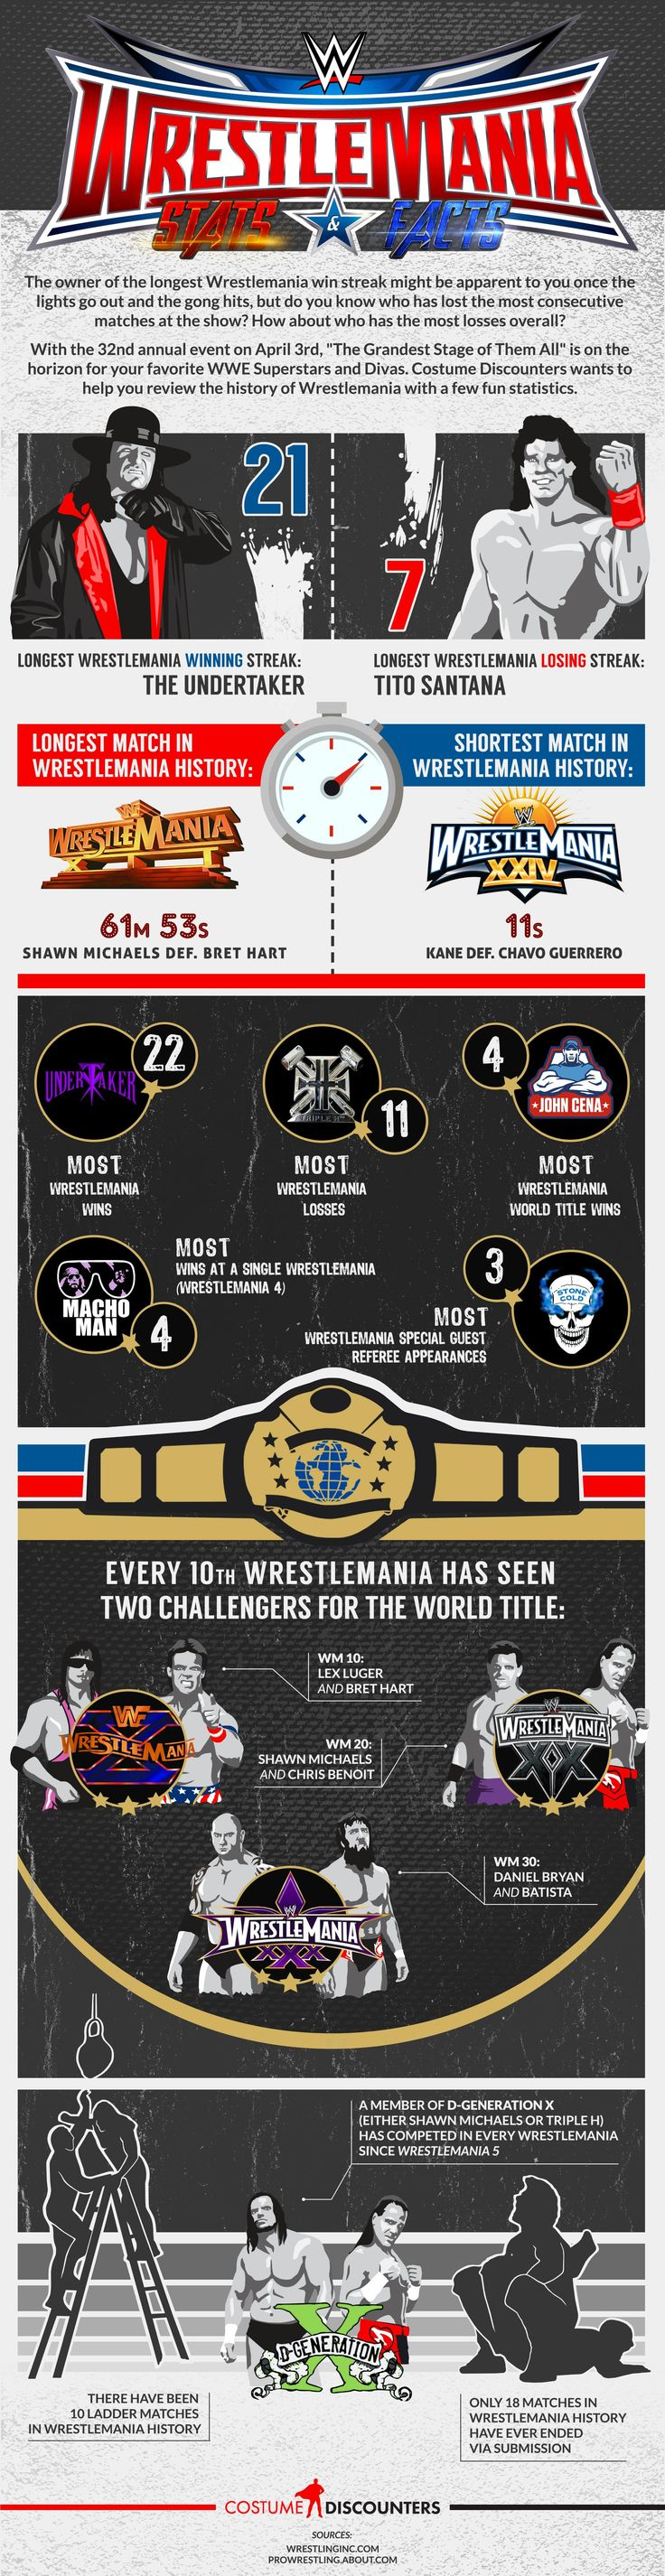 WWE WRESTLEMANIA FACTS AND STATS #wwe #wrestlemania